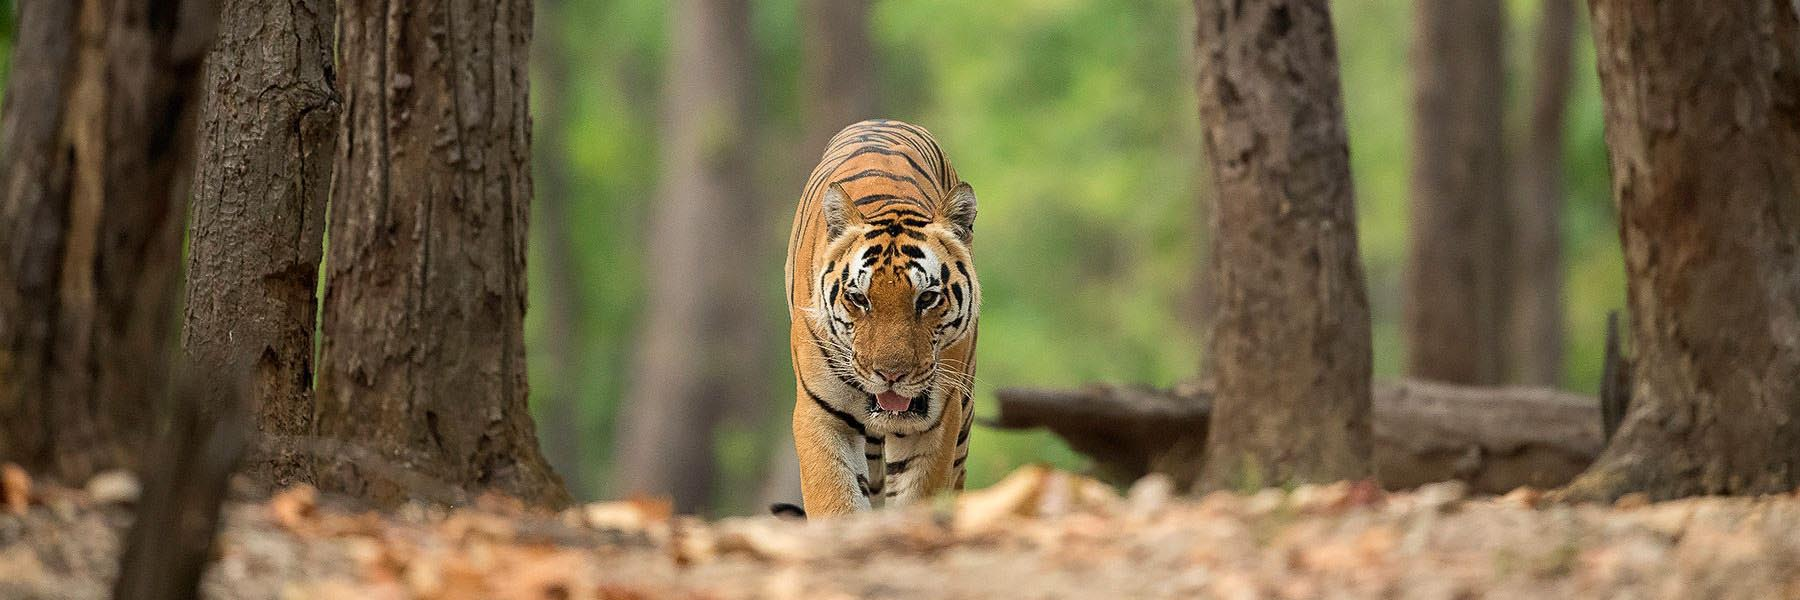 Spotting the elusive Tiger in India